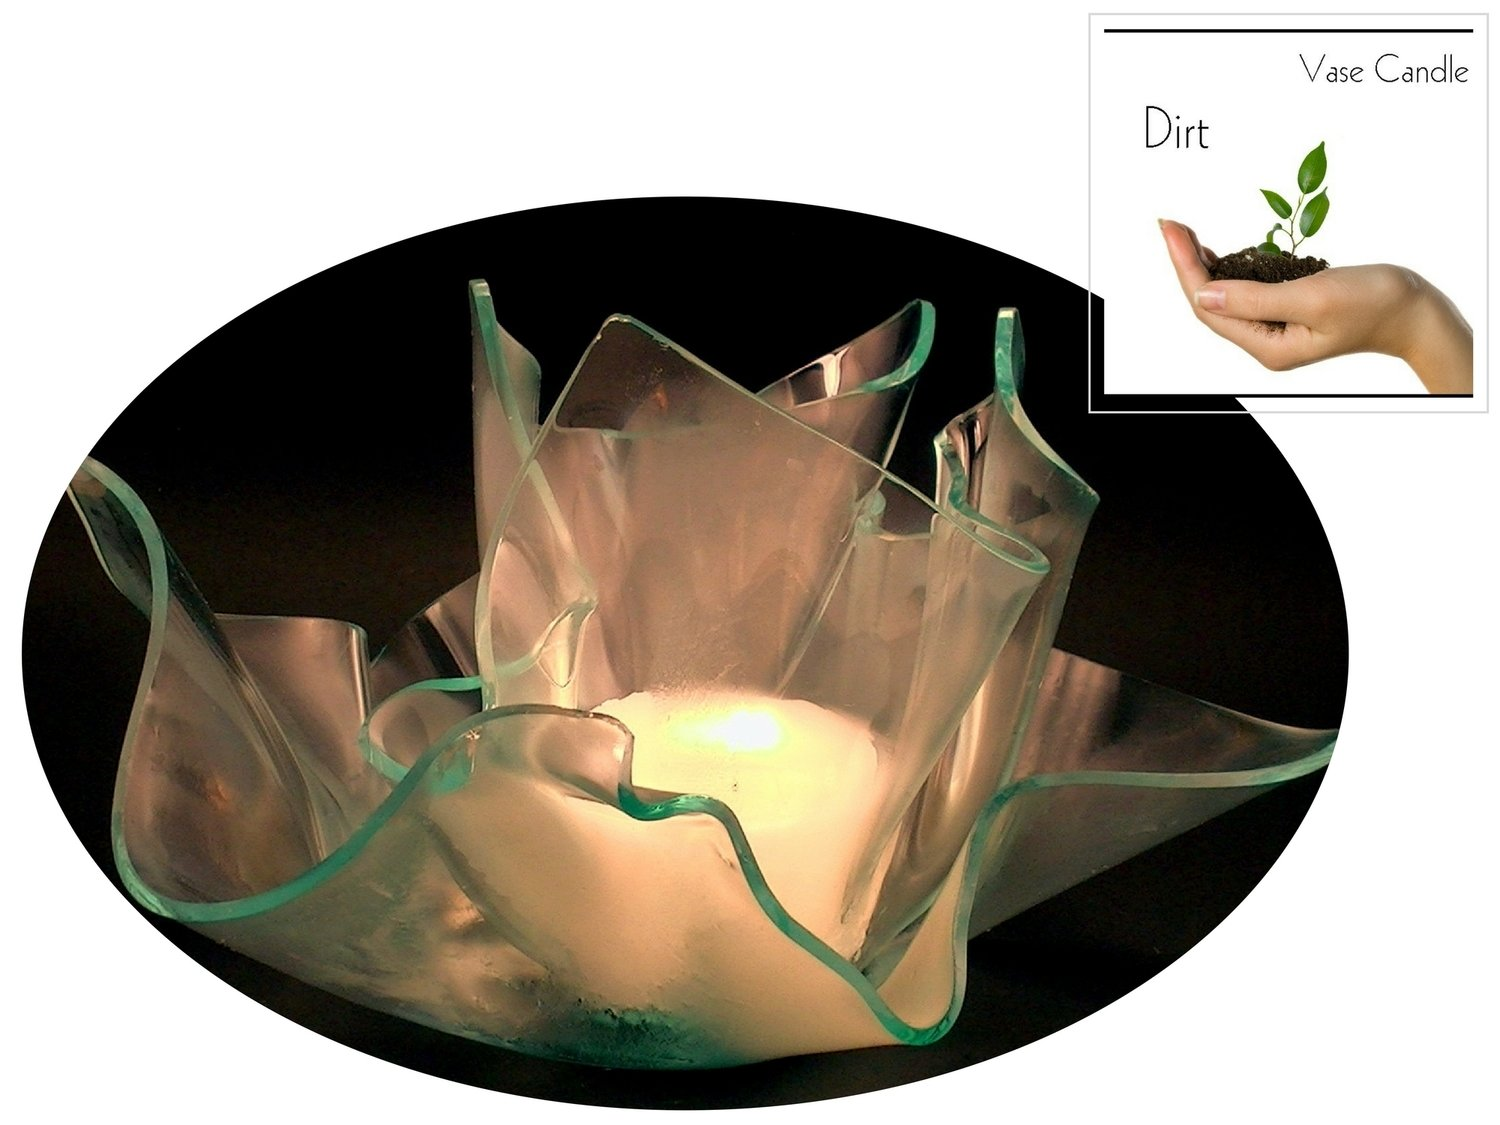 2 Dirt Candle Refills | Clear Satin Vase & Dish Set